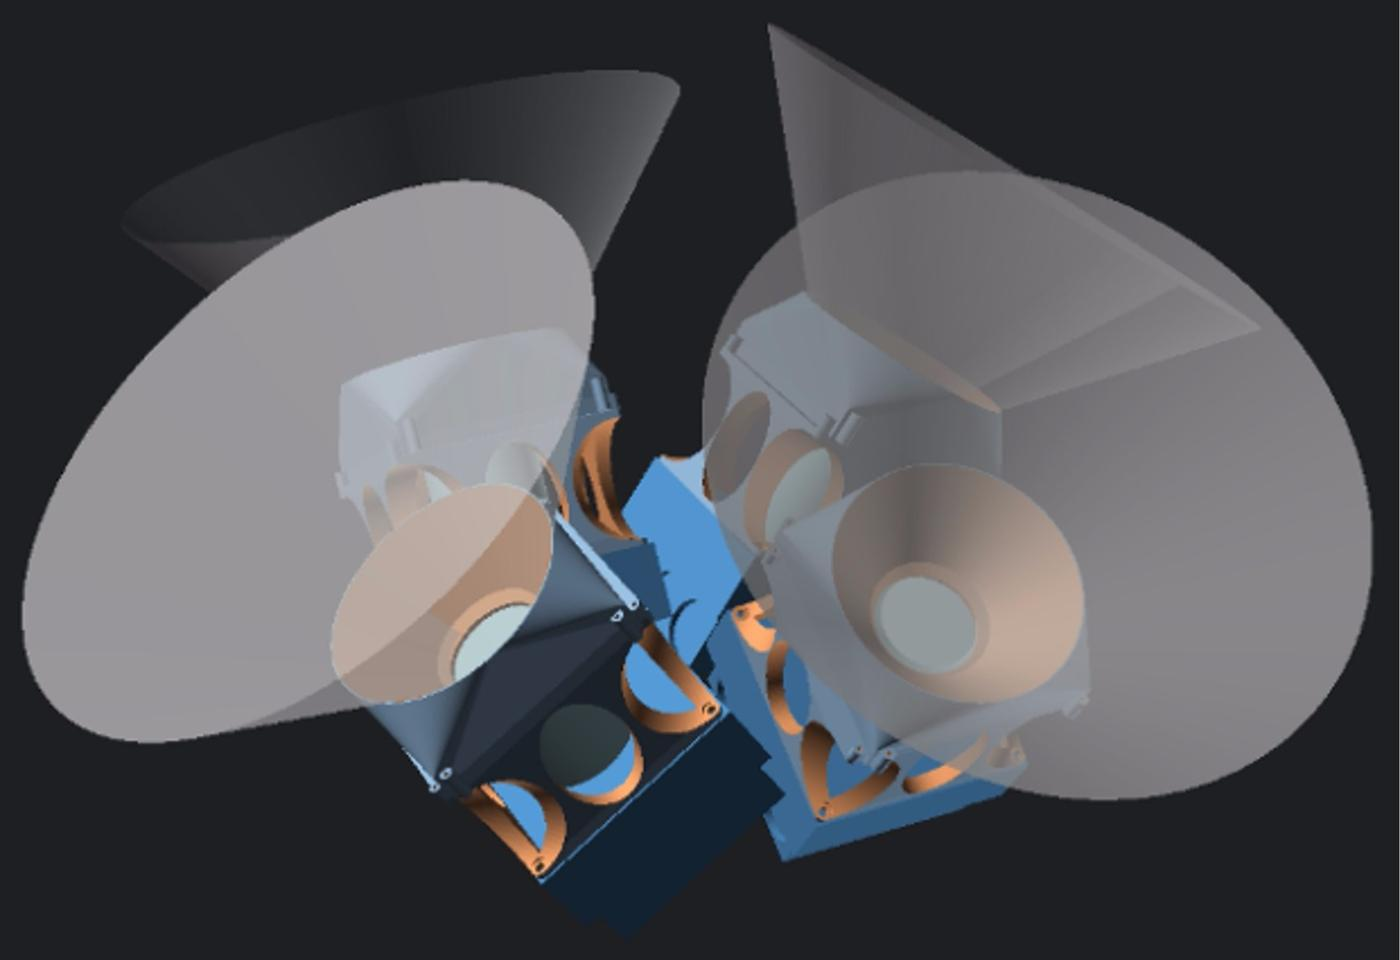 X-ray view of the laser-seeking camera